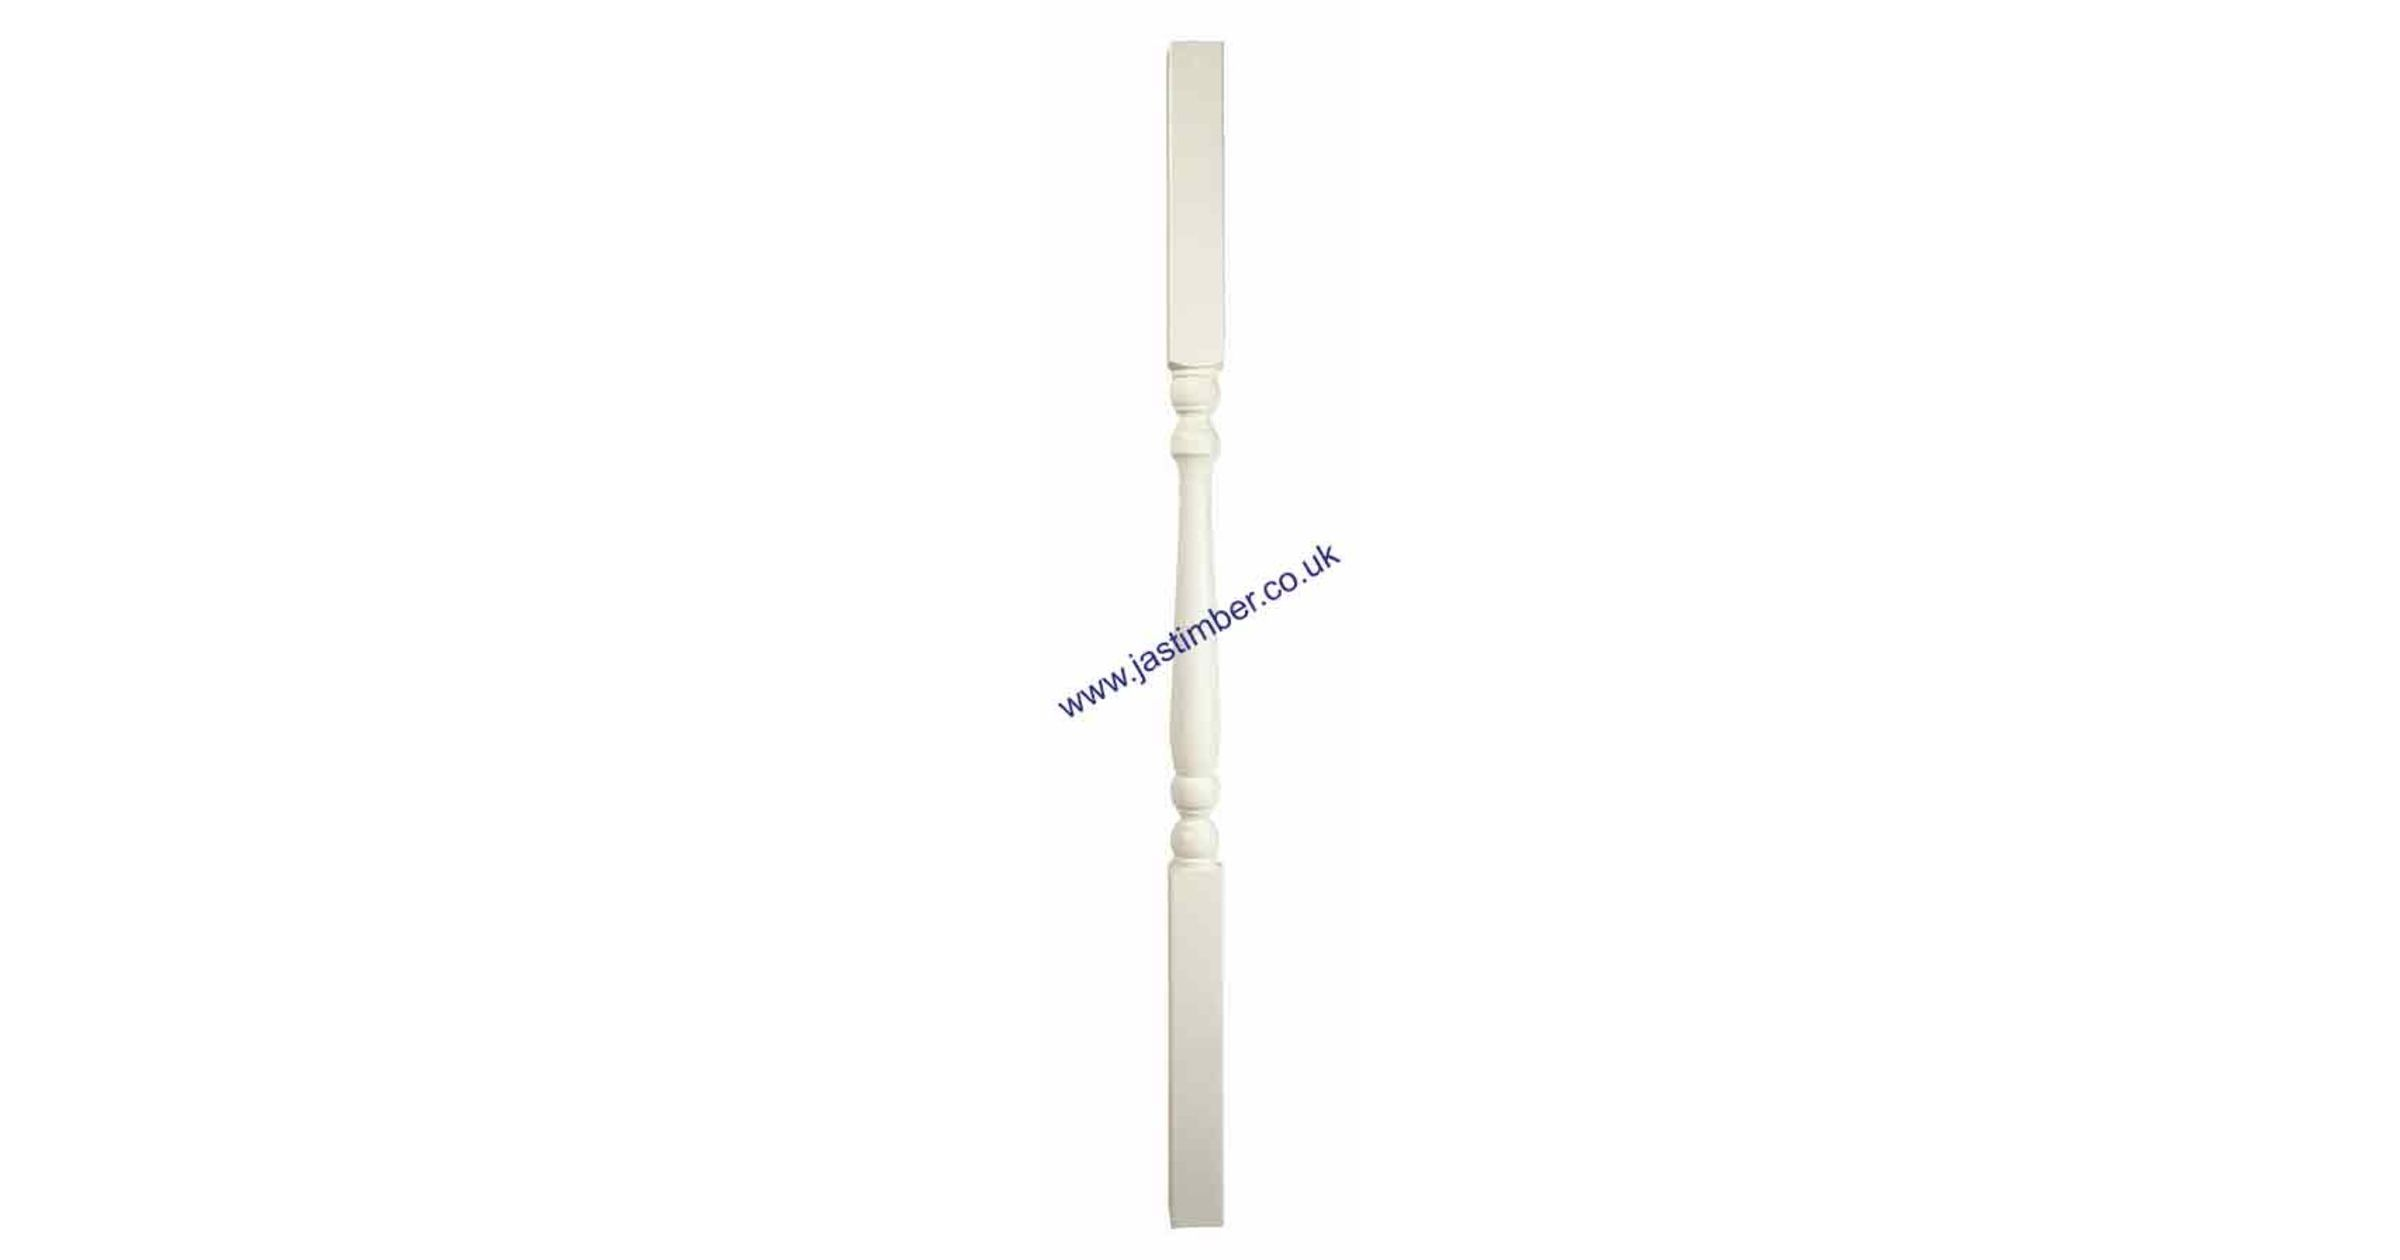 WHITE PRIMED CS-W 41mm *COLONIAL* SPINDLES - Richard Burbidge